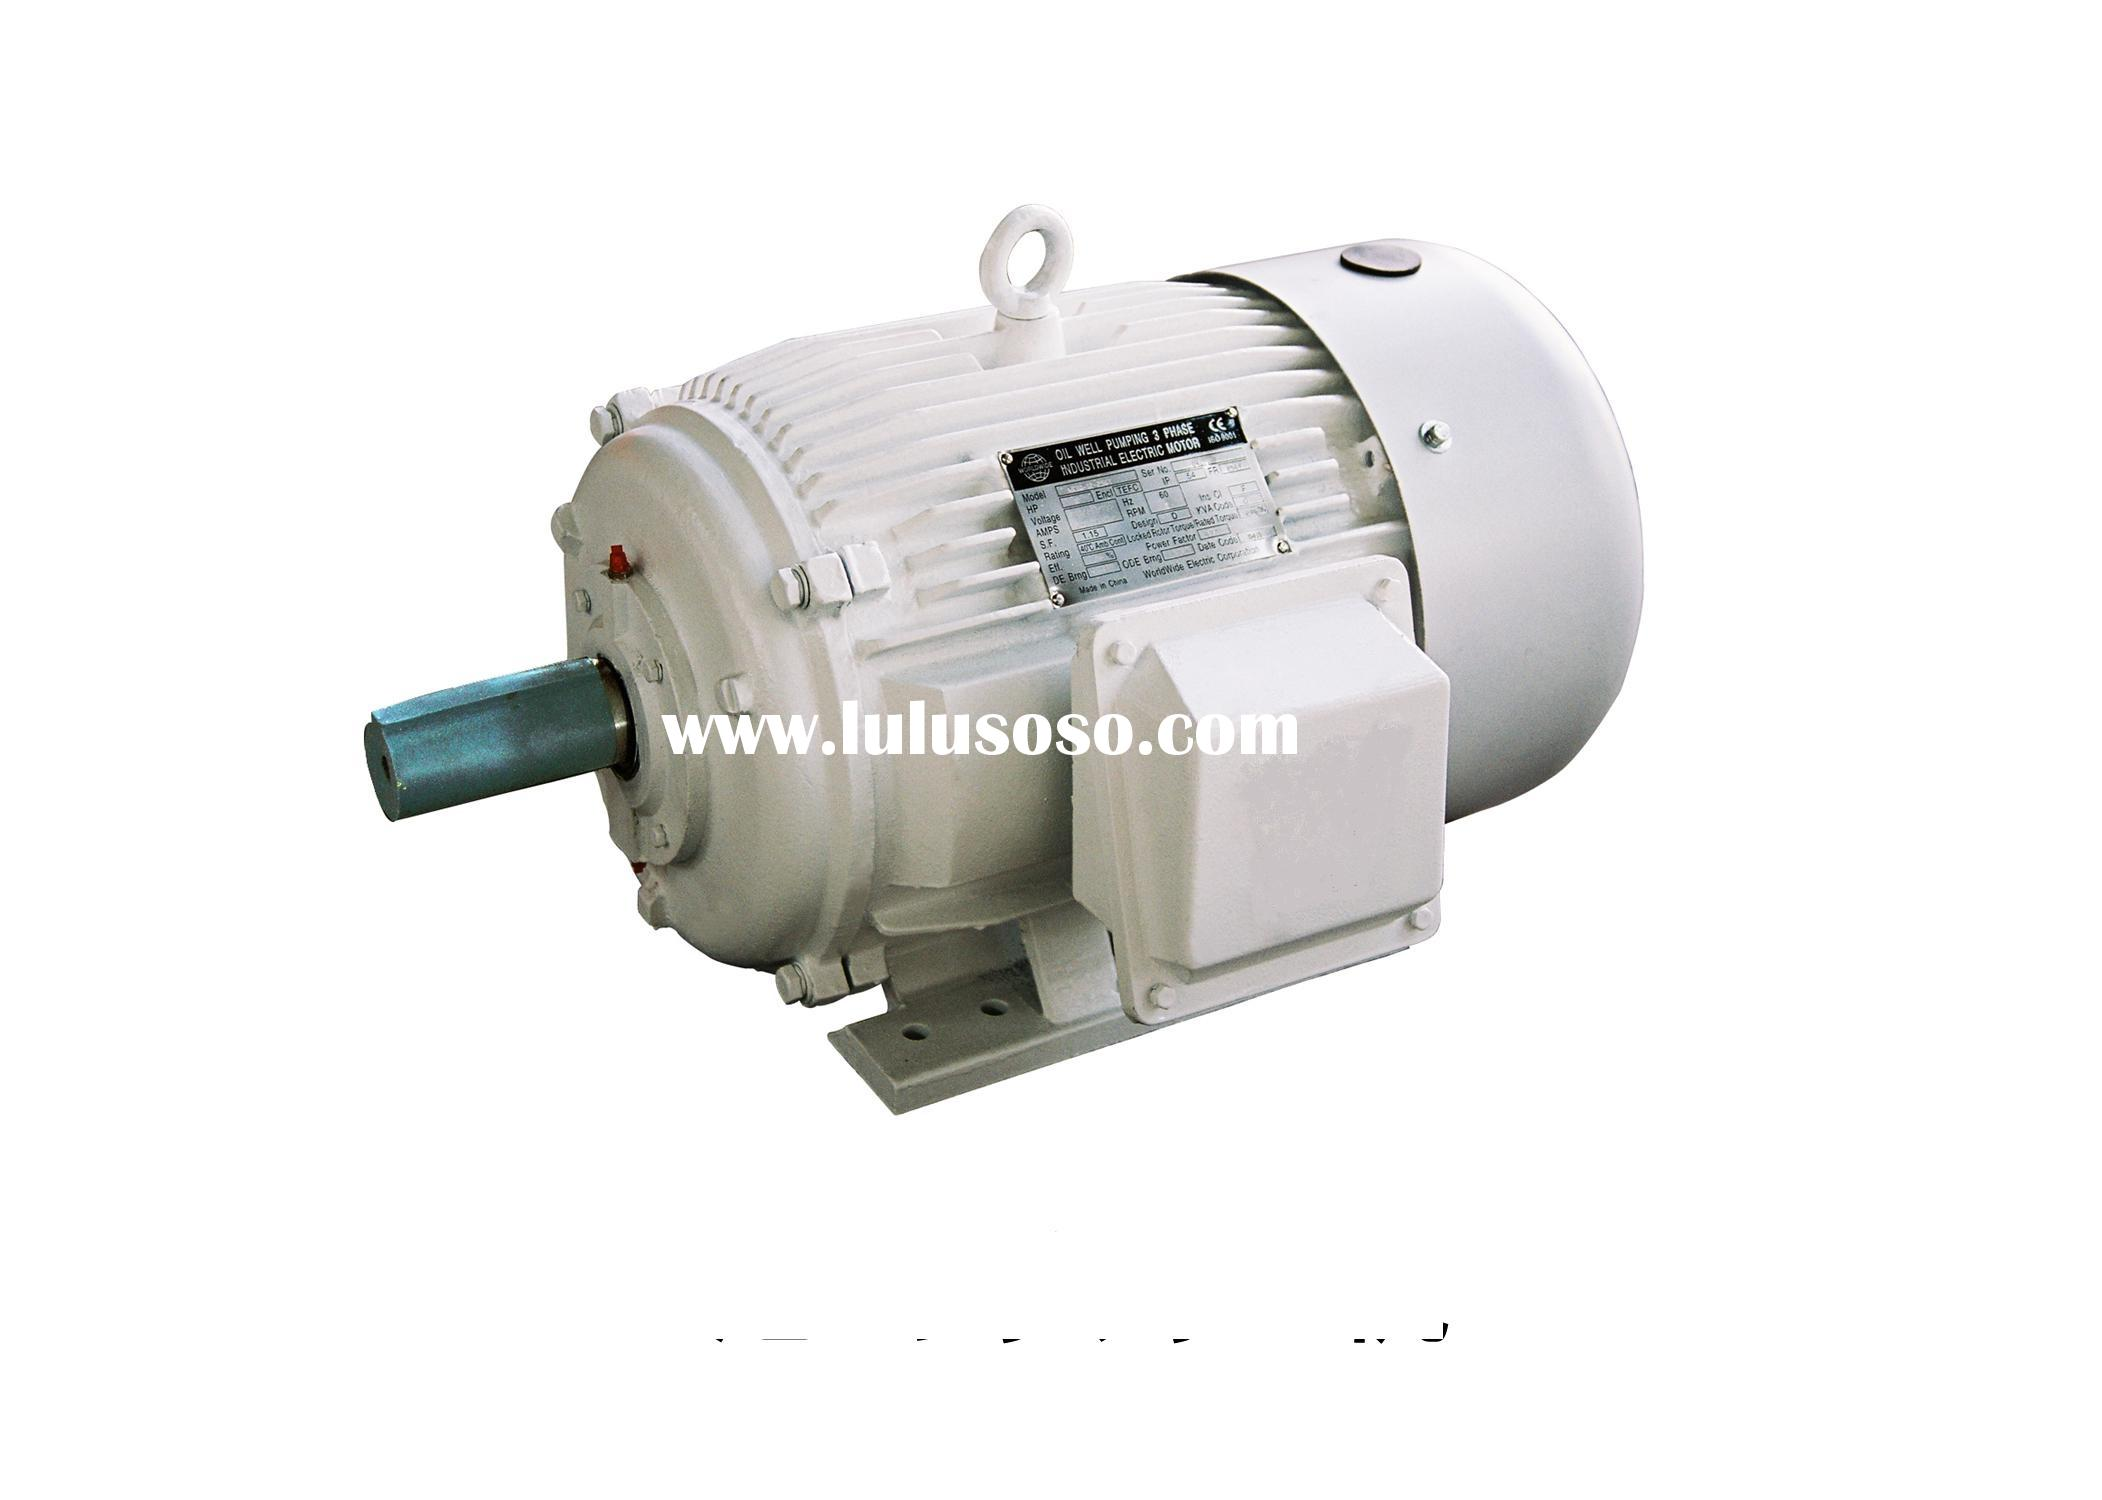 Nema electric motor nema electric motor manufacturers in for Nema design b motor